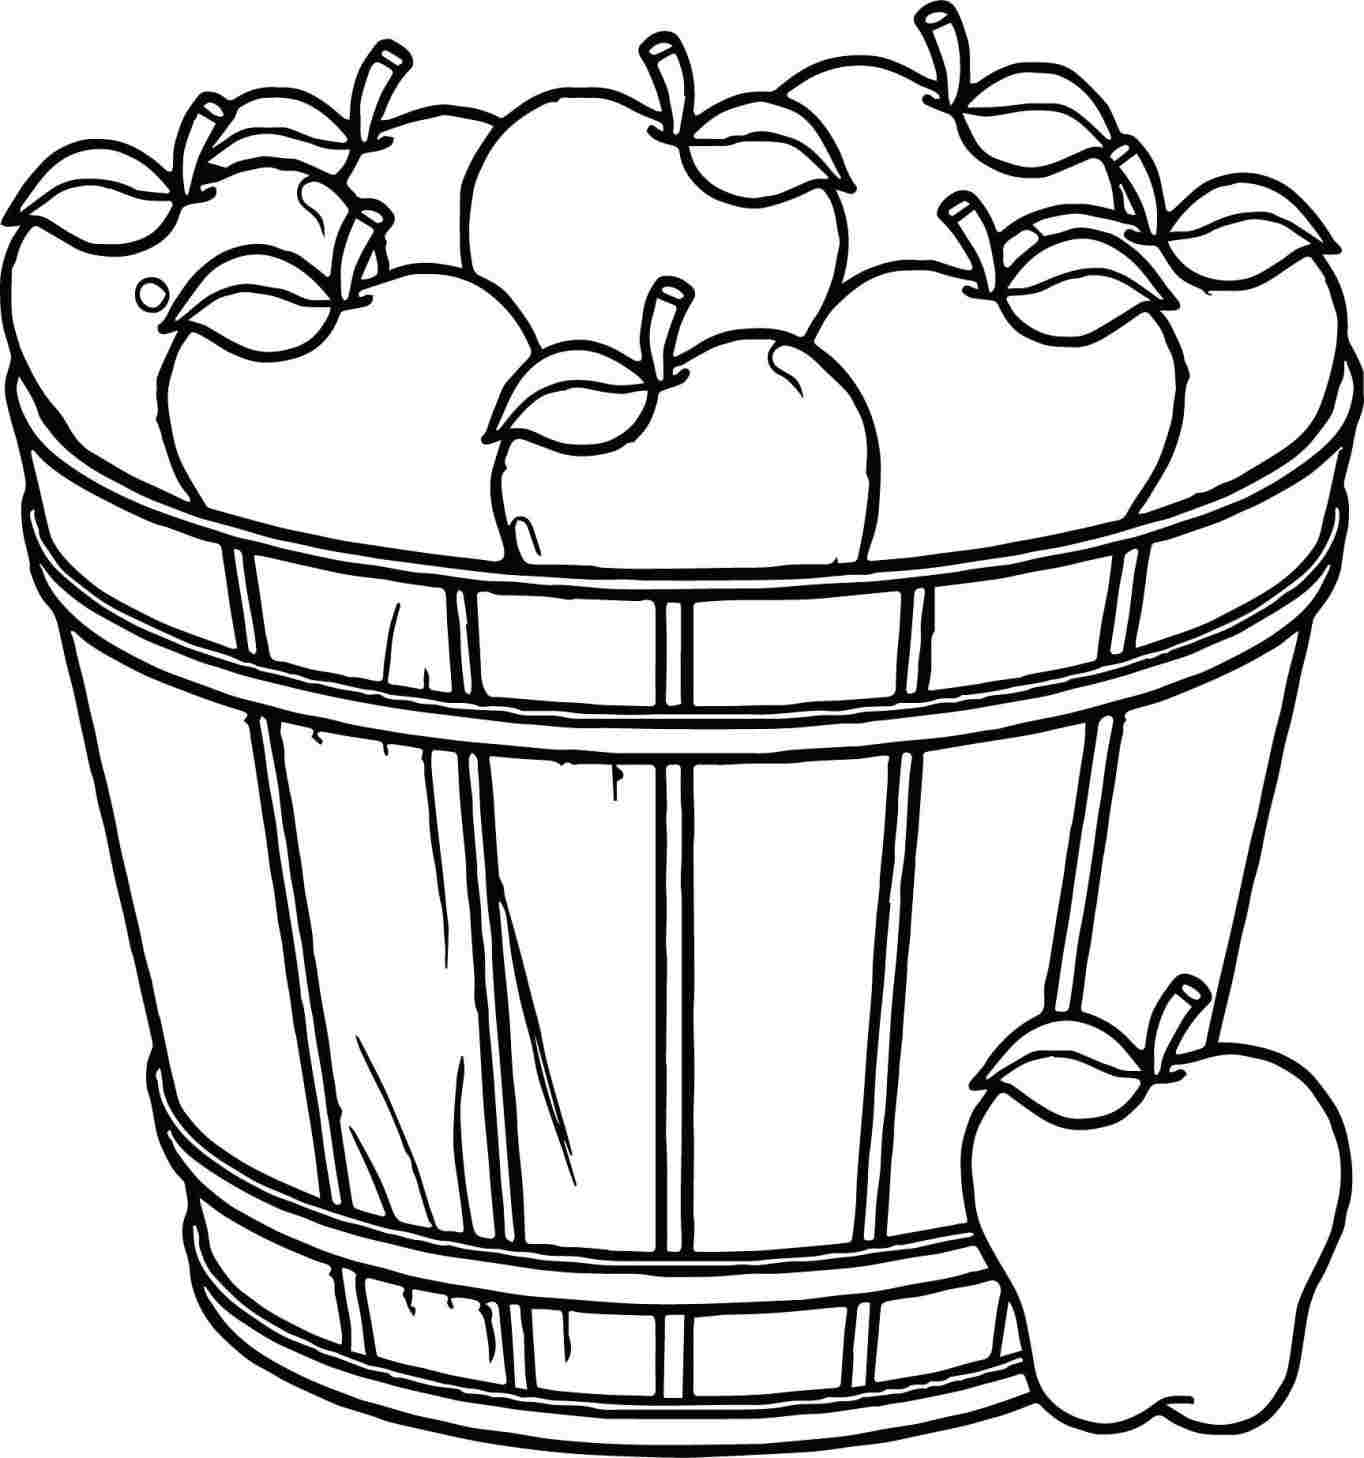 1364x1458 Fruit Basket Drawing For Kid